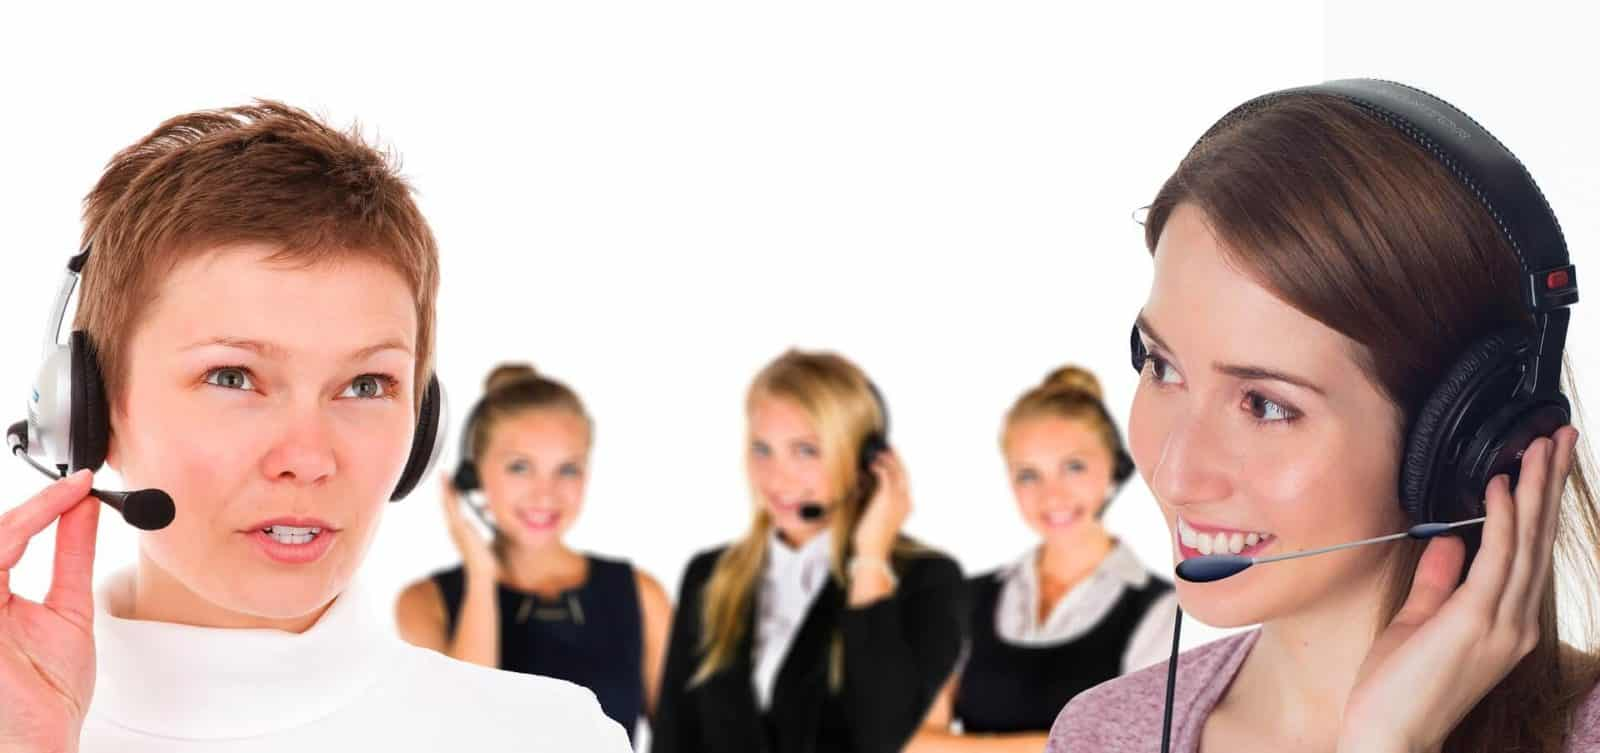 Stock footage call center